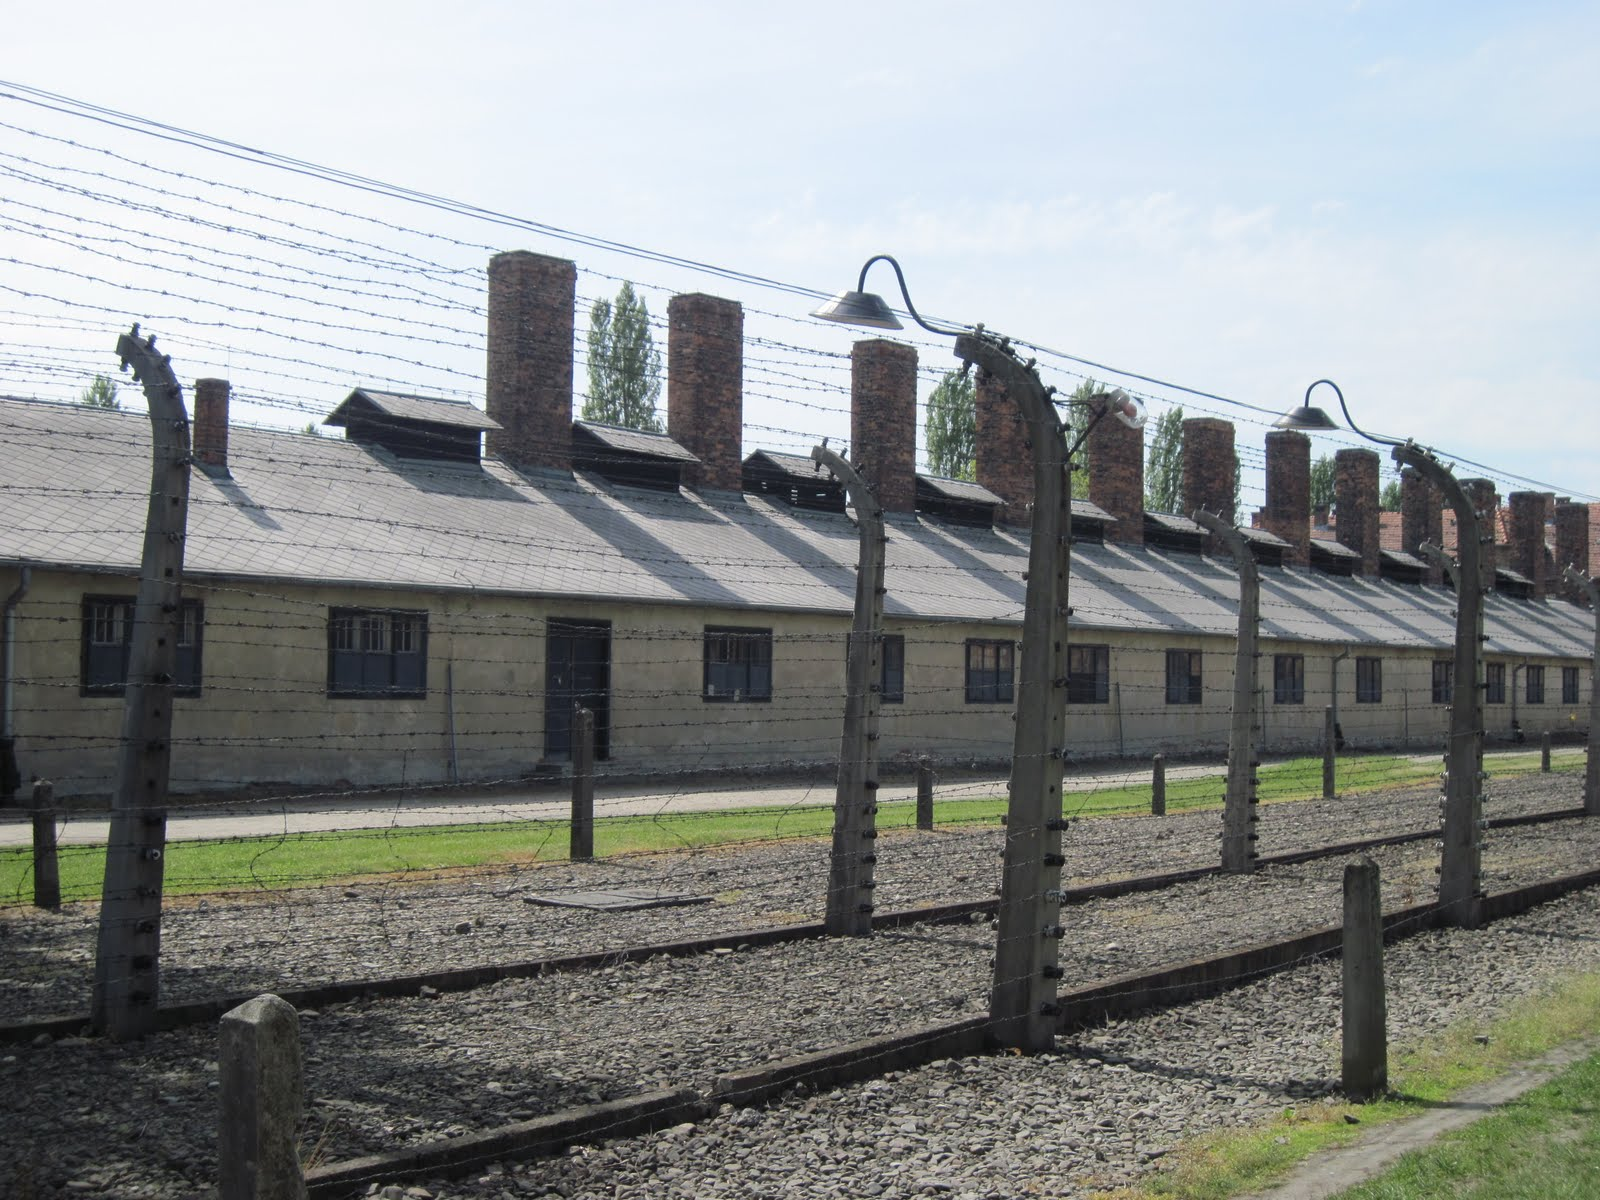 The Holocaust: Concentration Camps